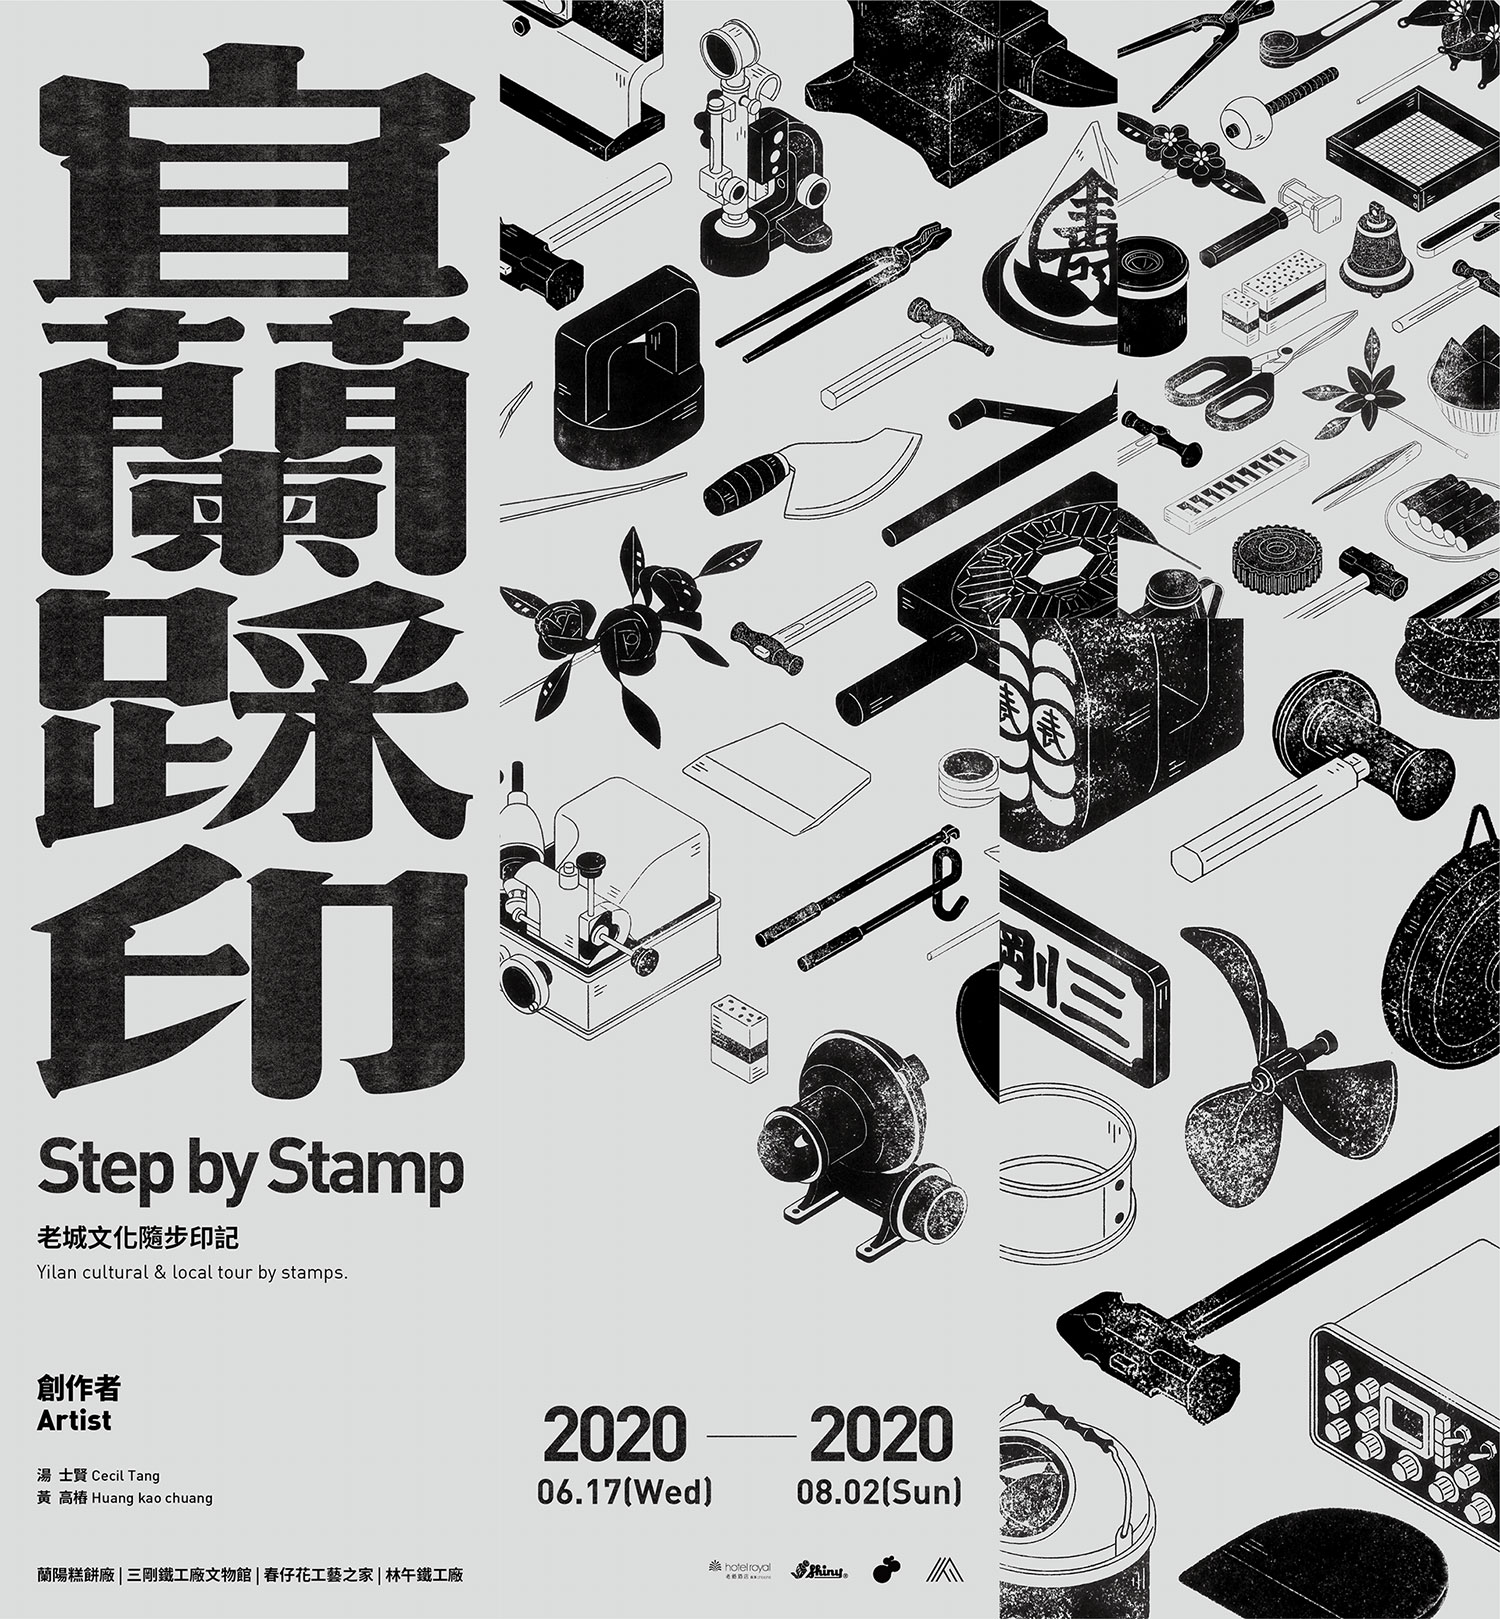 宜蘭踩印 Step by Stamp